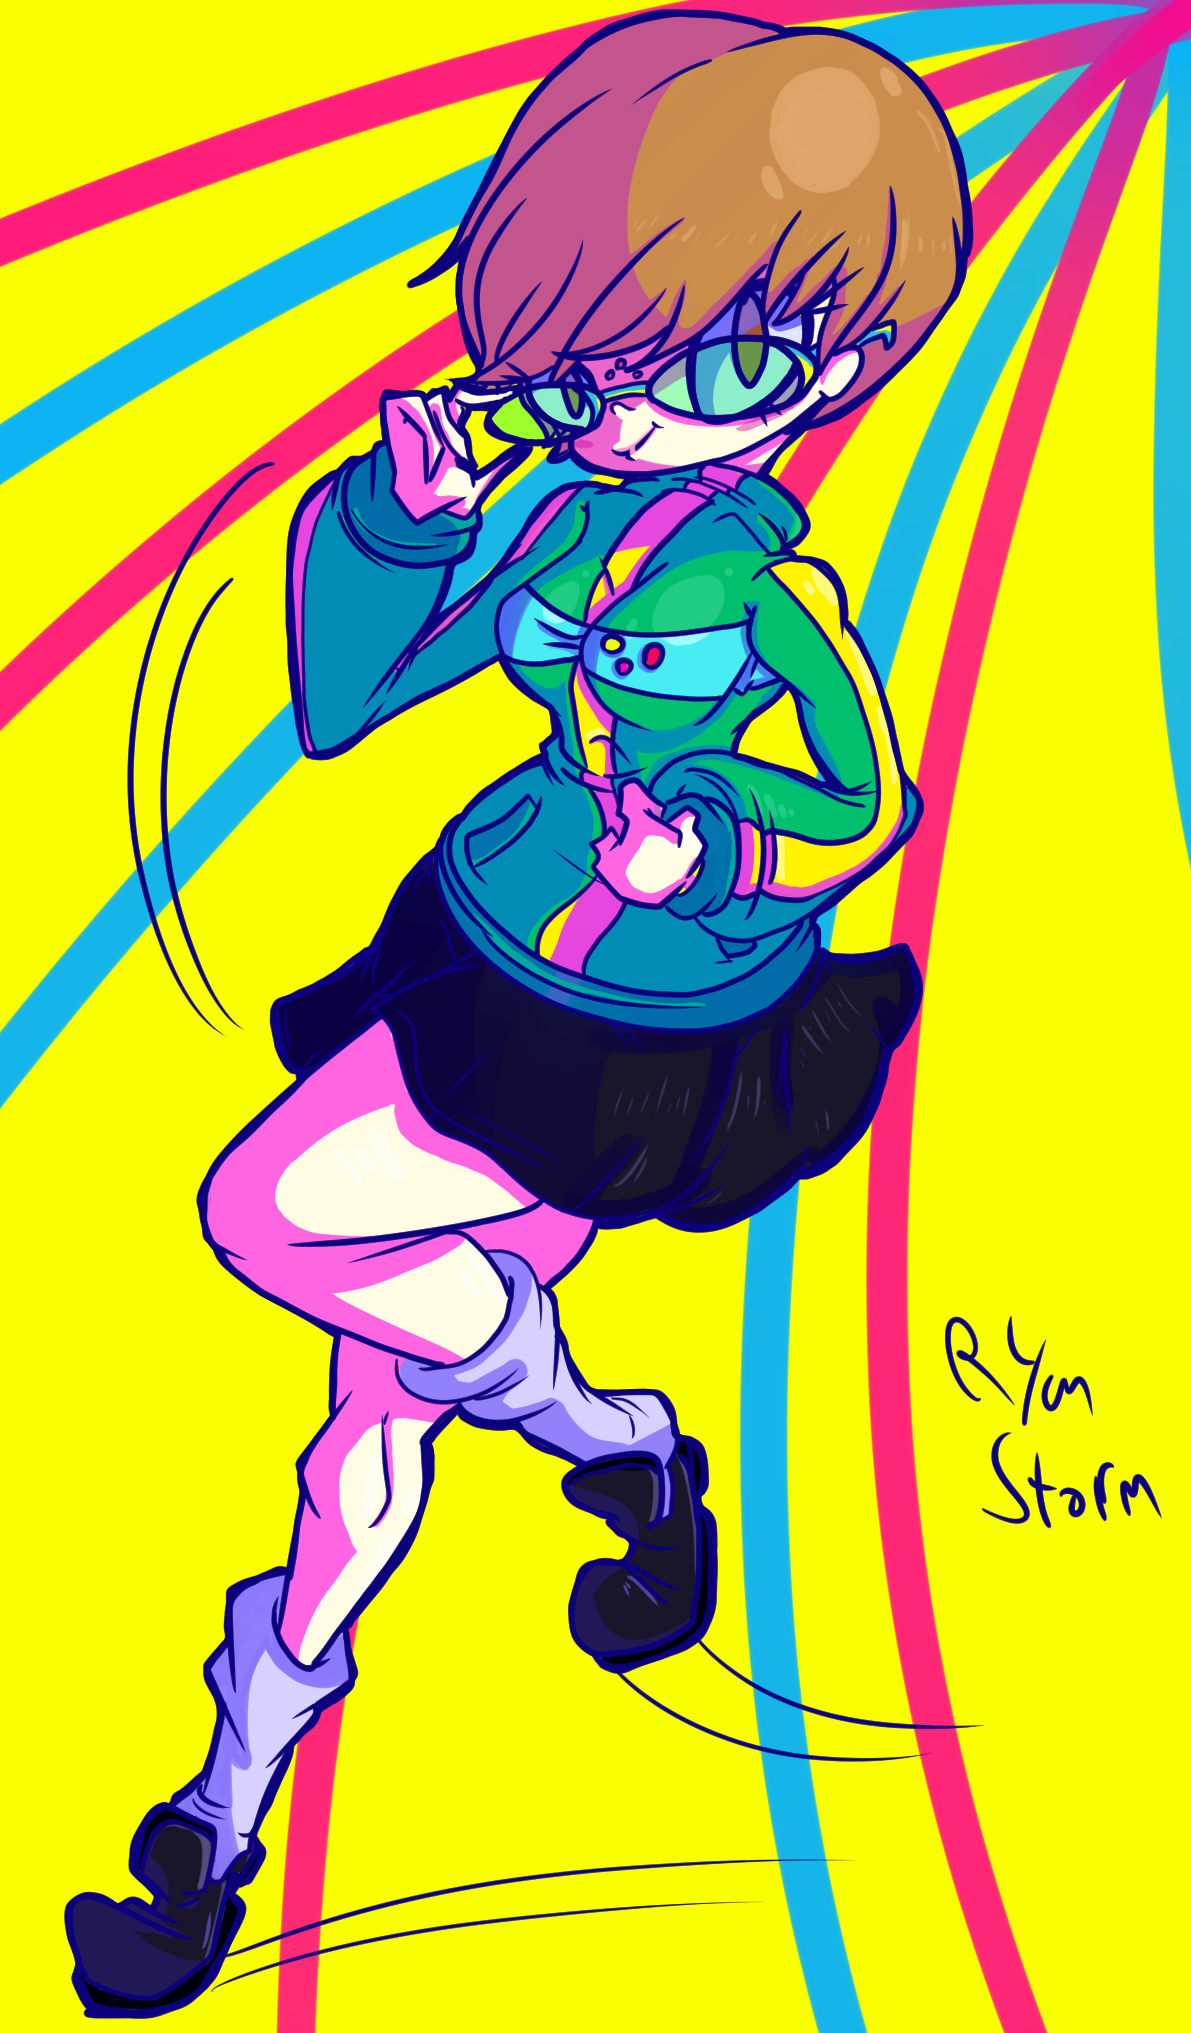 Woah Its a Chie